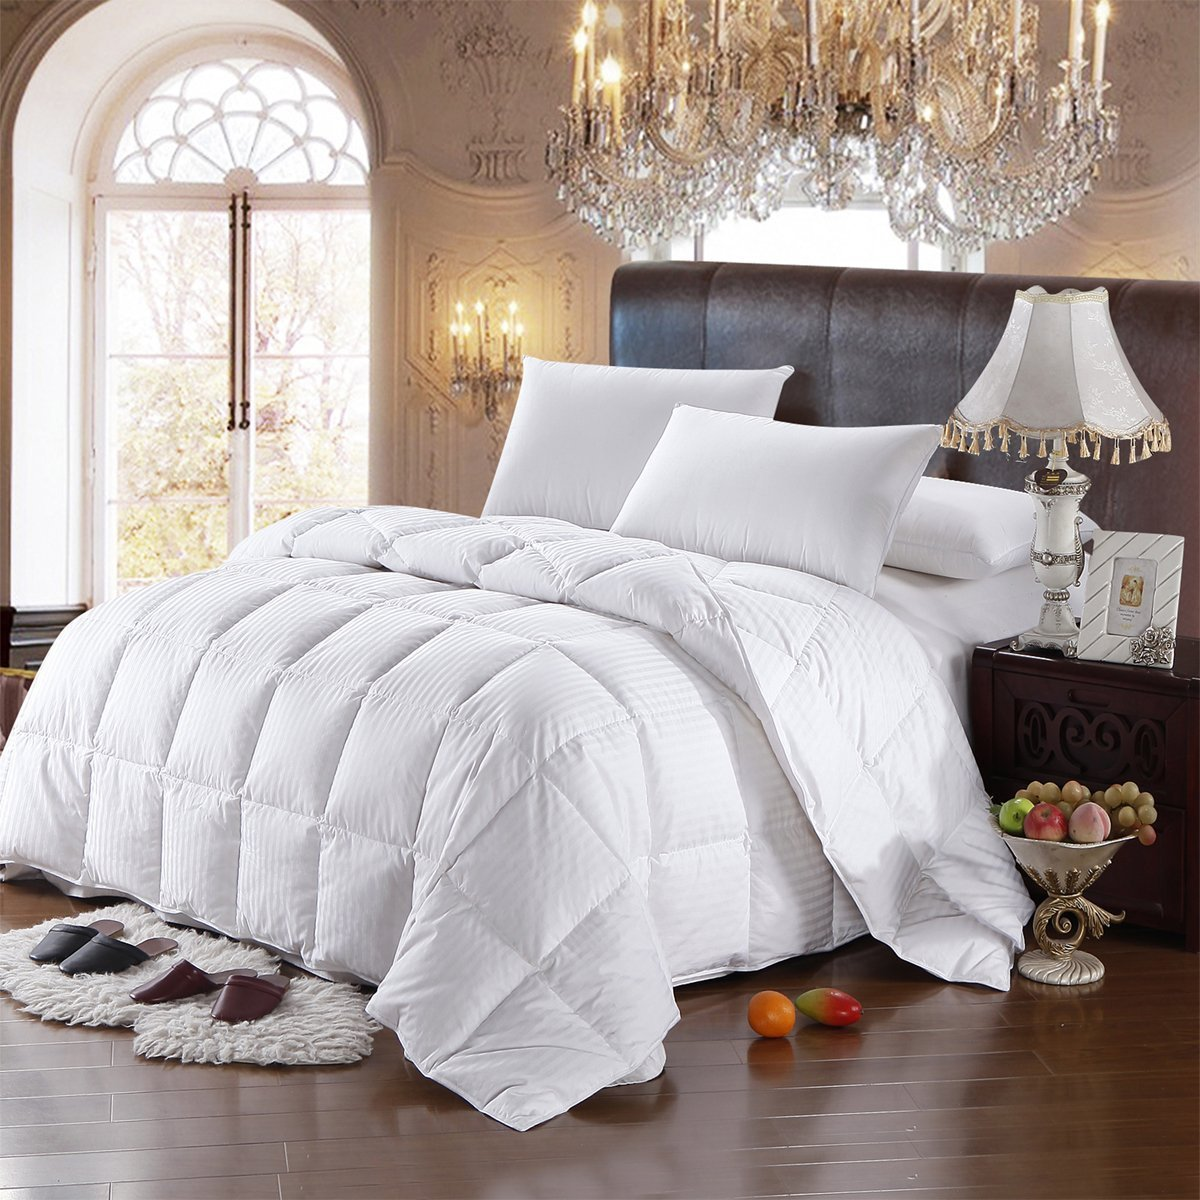 8 Pieces 100% Cotton Solid Ivory Queen Goose Down Bed in a Bag Set Including 300TC (Sheet Set + Duvet Cover Set) + All Season White Striped Goose Down Comforter 600 Fill Power